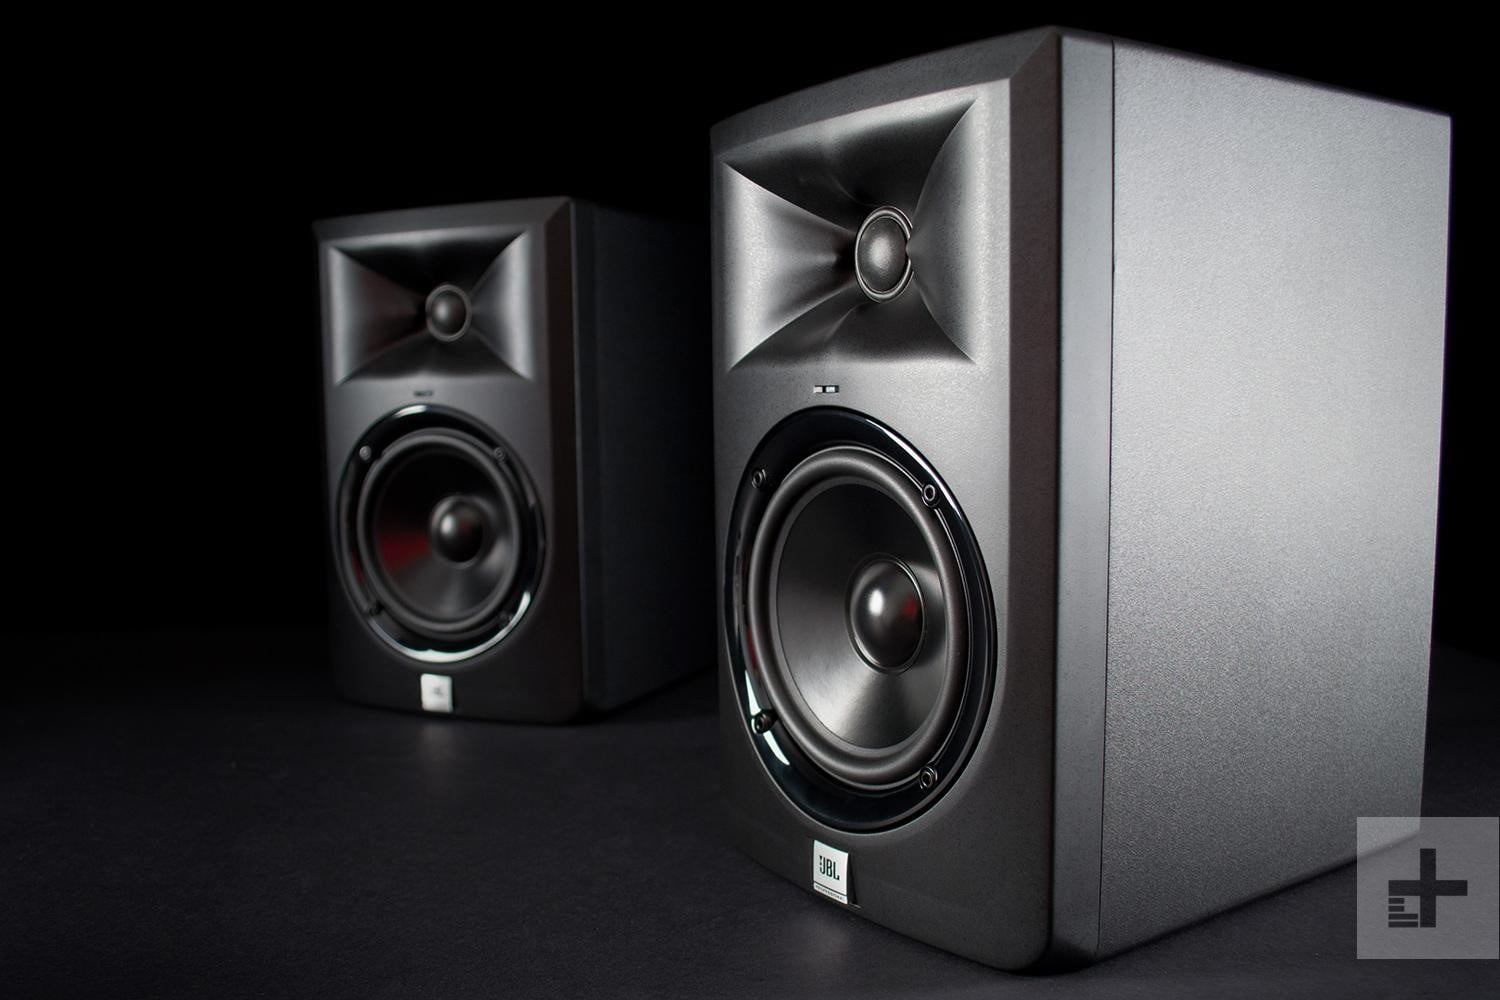 Speakers For Tv Surround Sound And More What To Expect When Wiring Your Home The 21st Best Jbl Lsr305